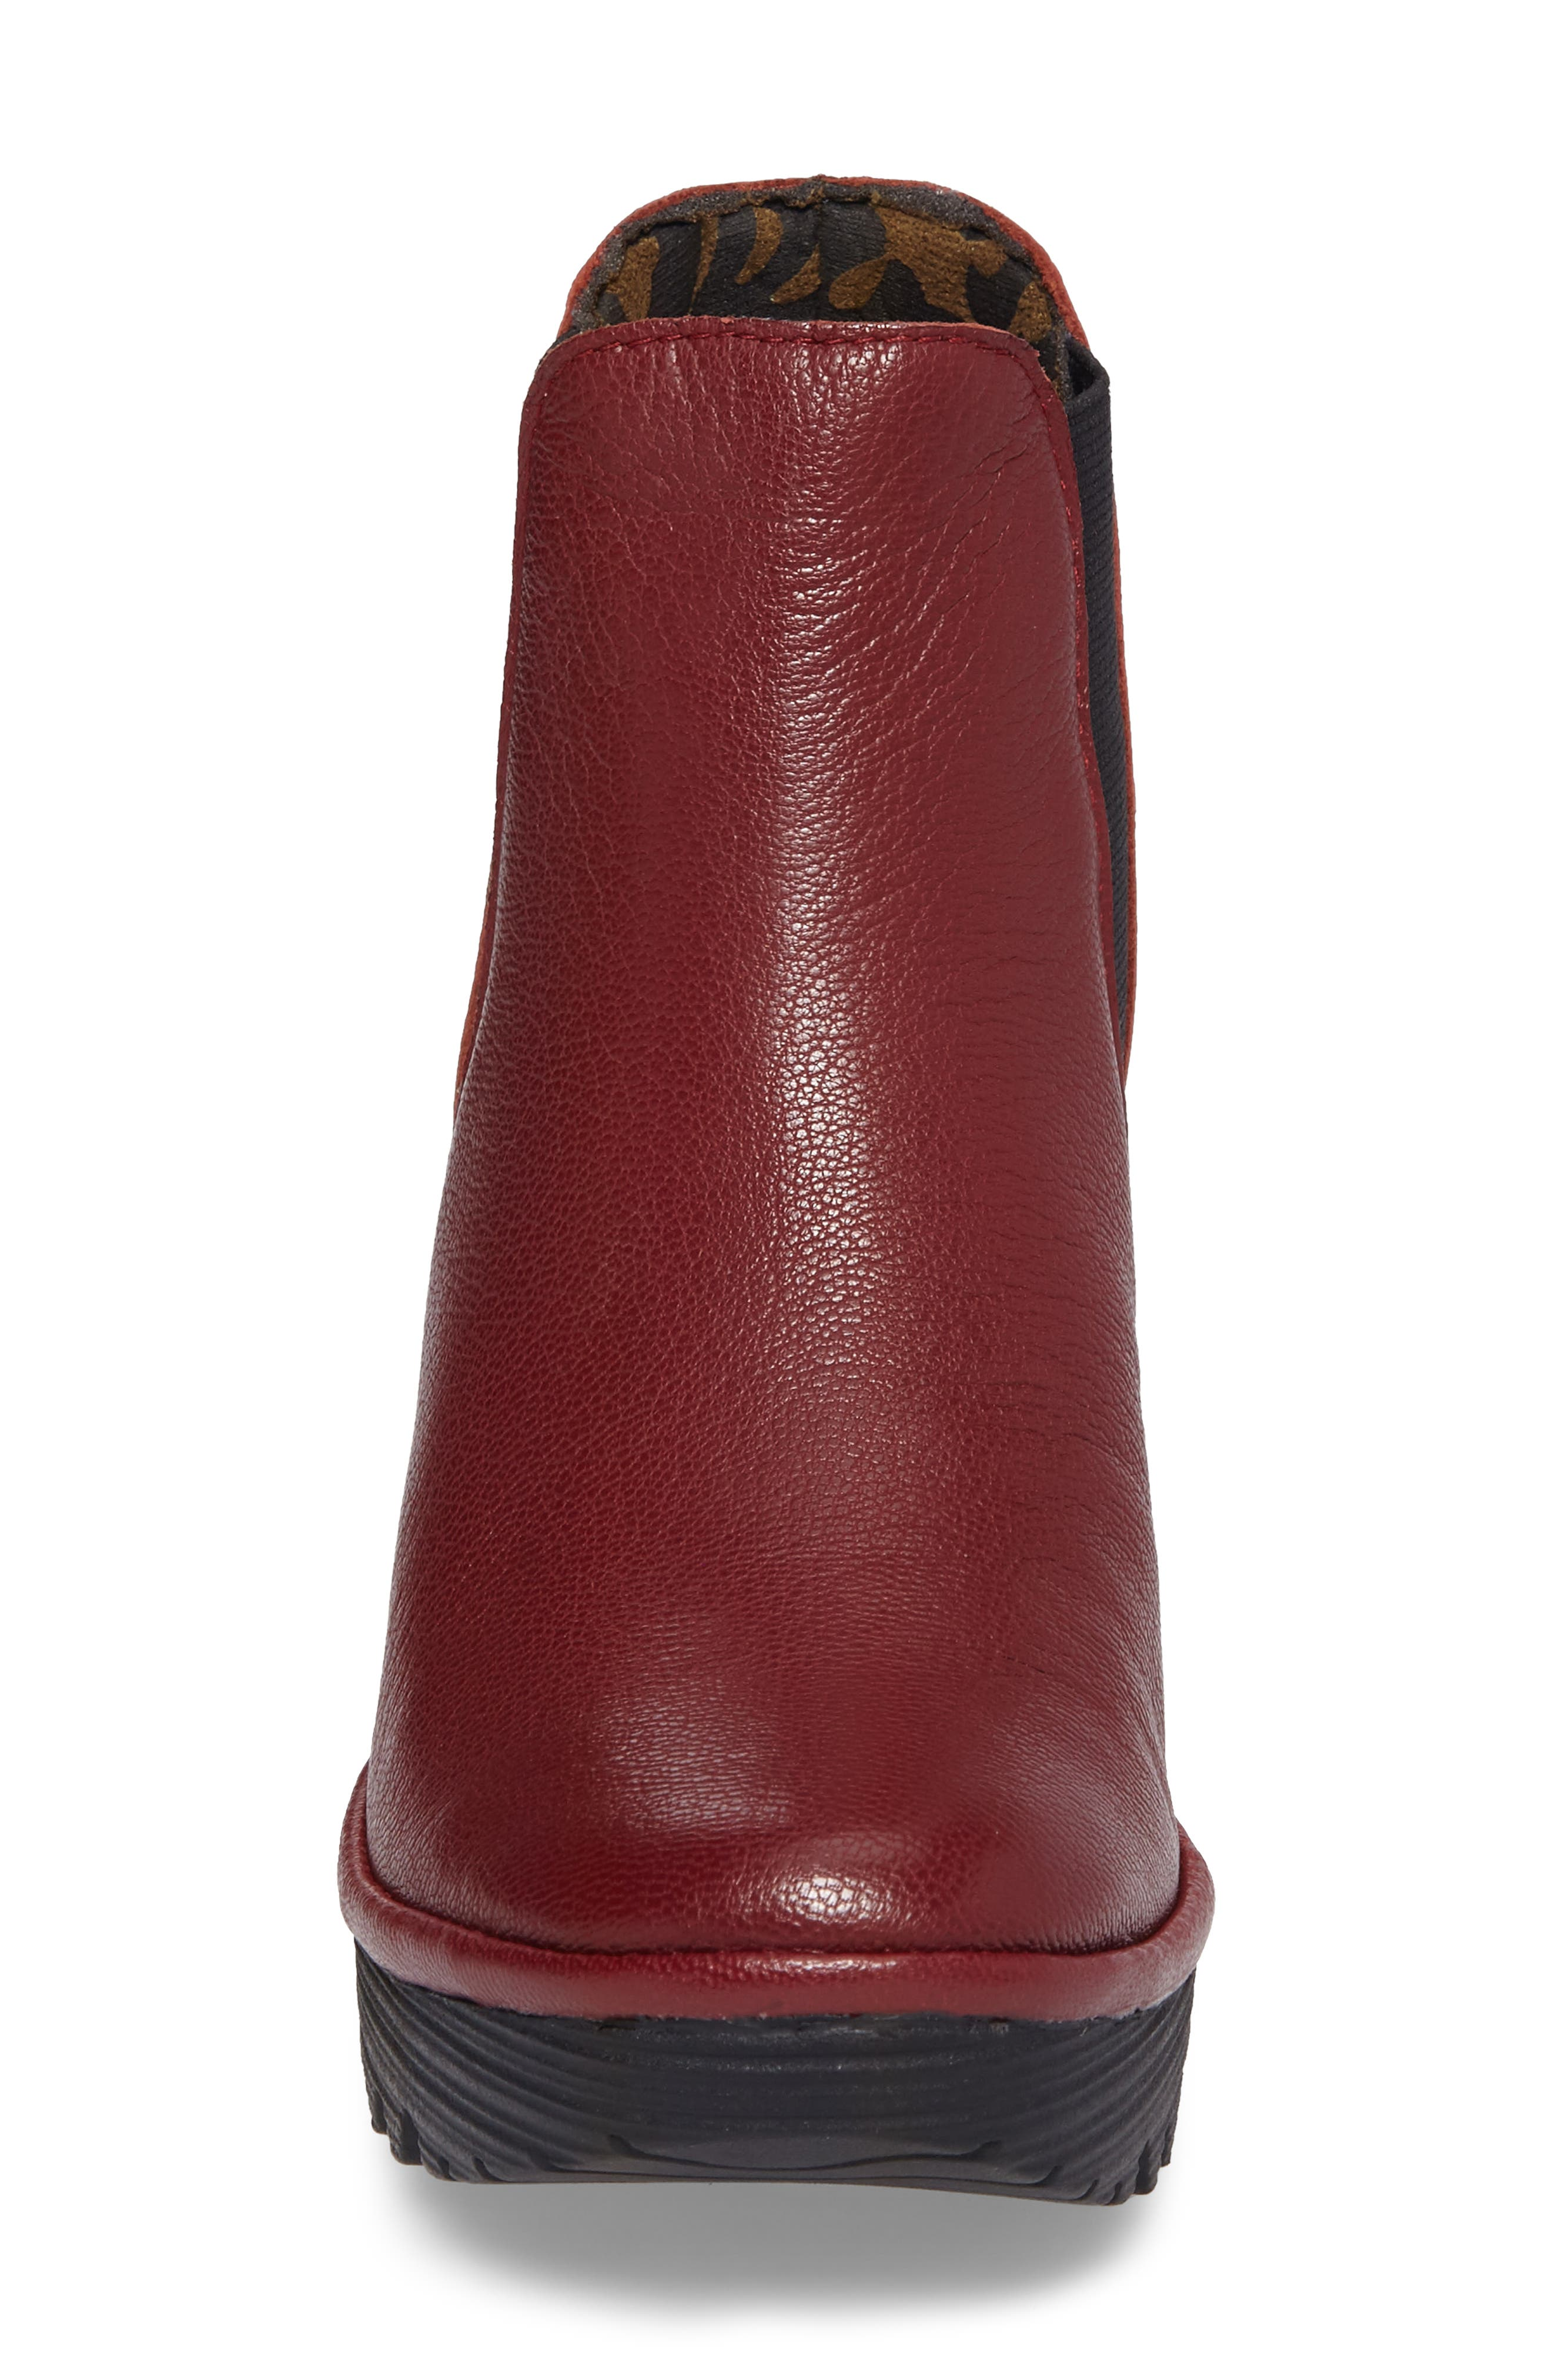 Yoss Wedge Bootie,                             Alternate thumbnail 4, color,                             Cordoba Red Leather